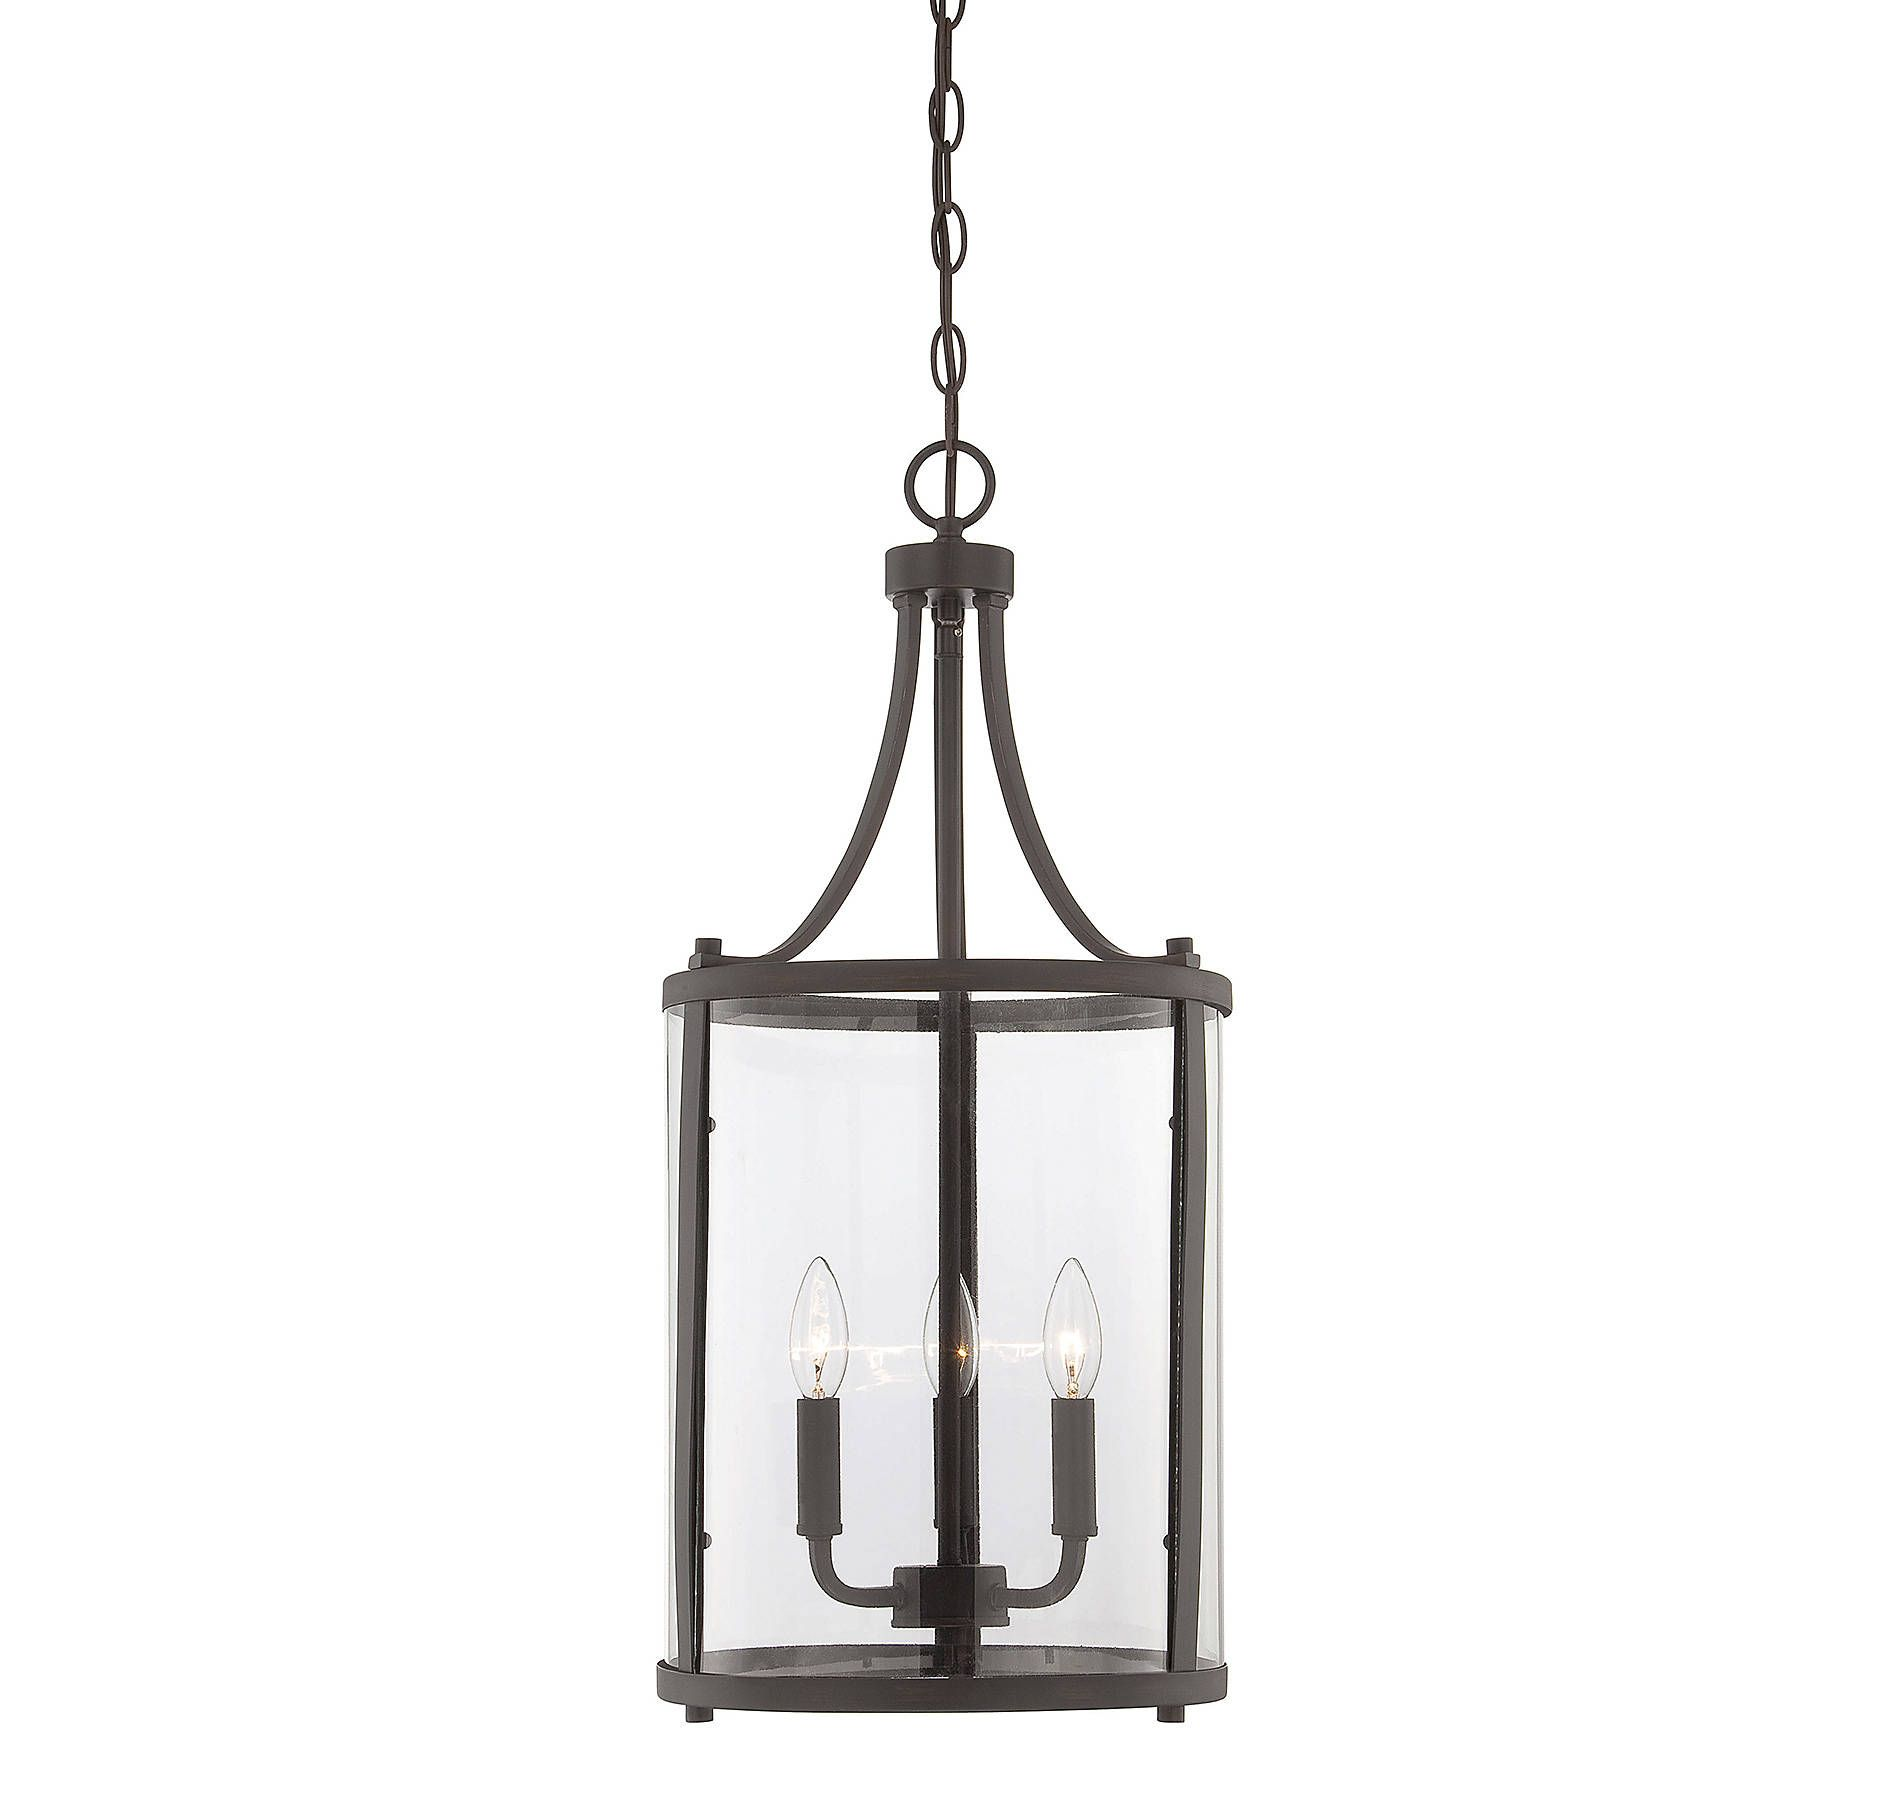 savoy pendant inch cfm glass finish in black crystal magnifying lighting item clear house light wide birdcage large forged image shown and